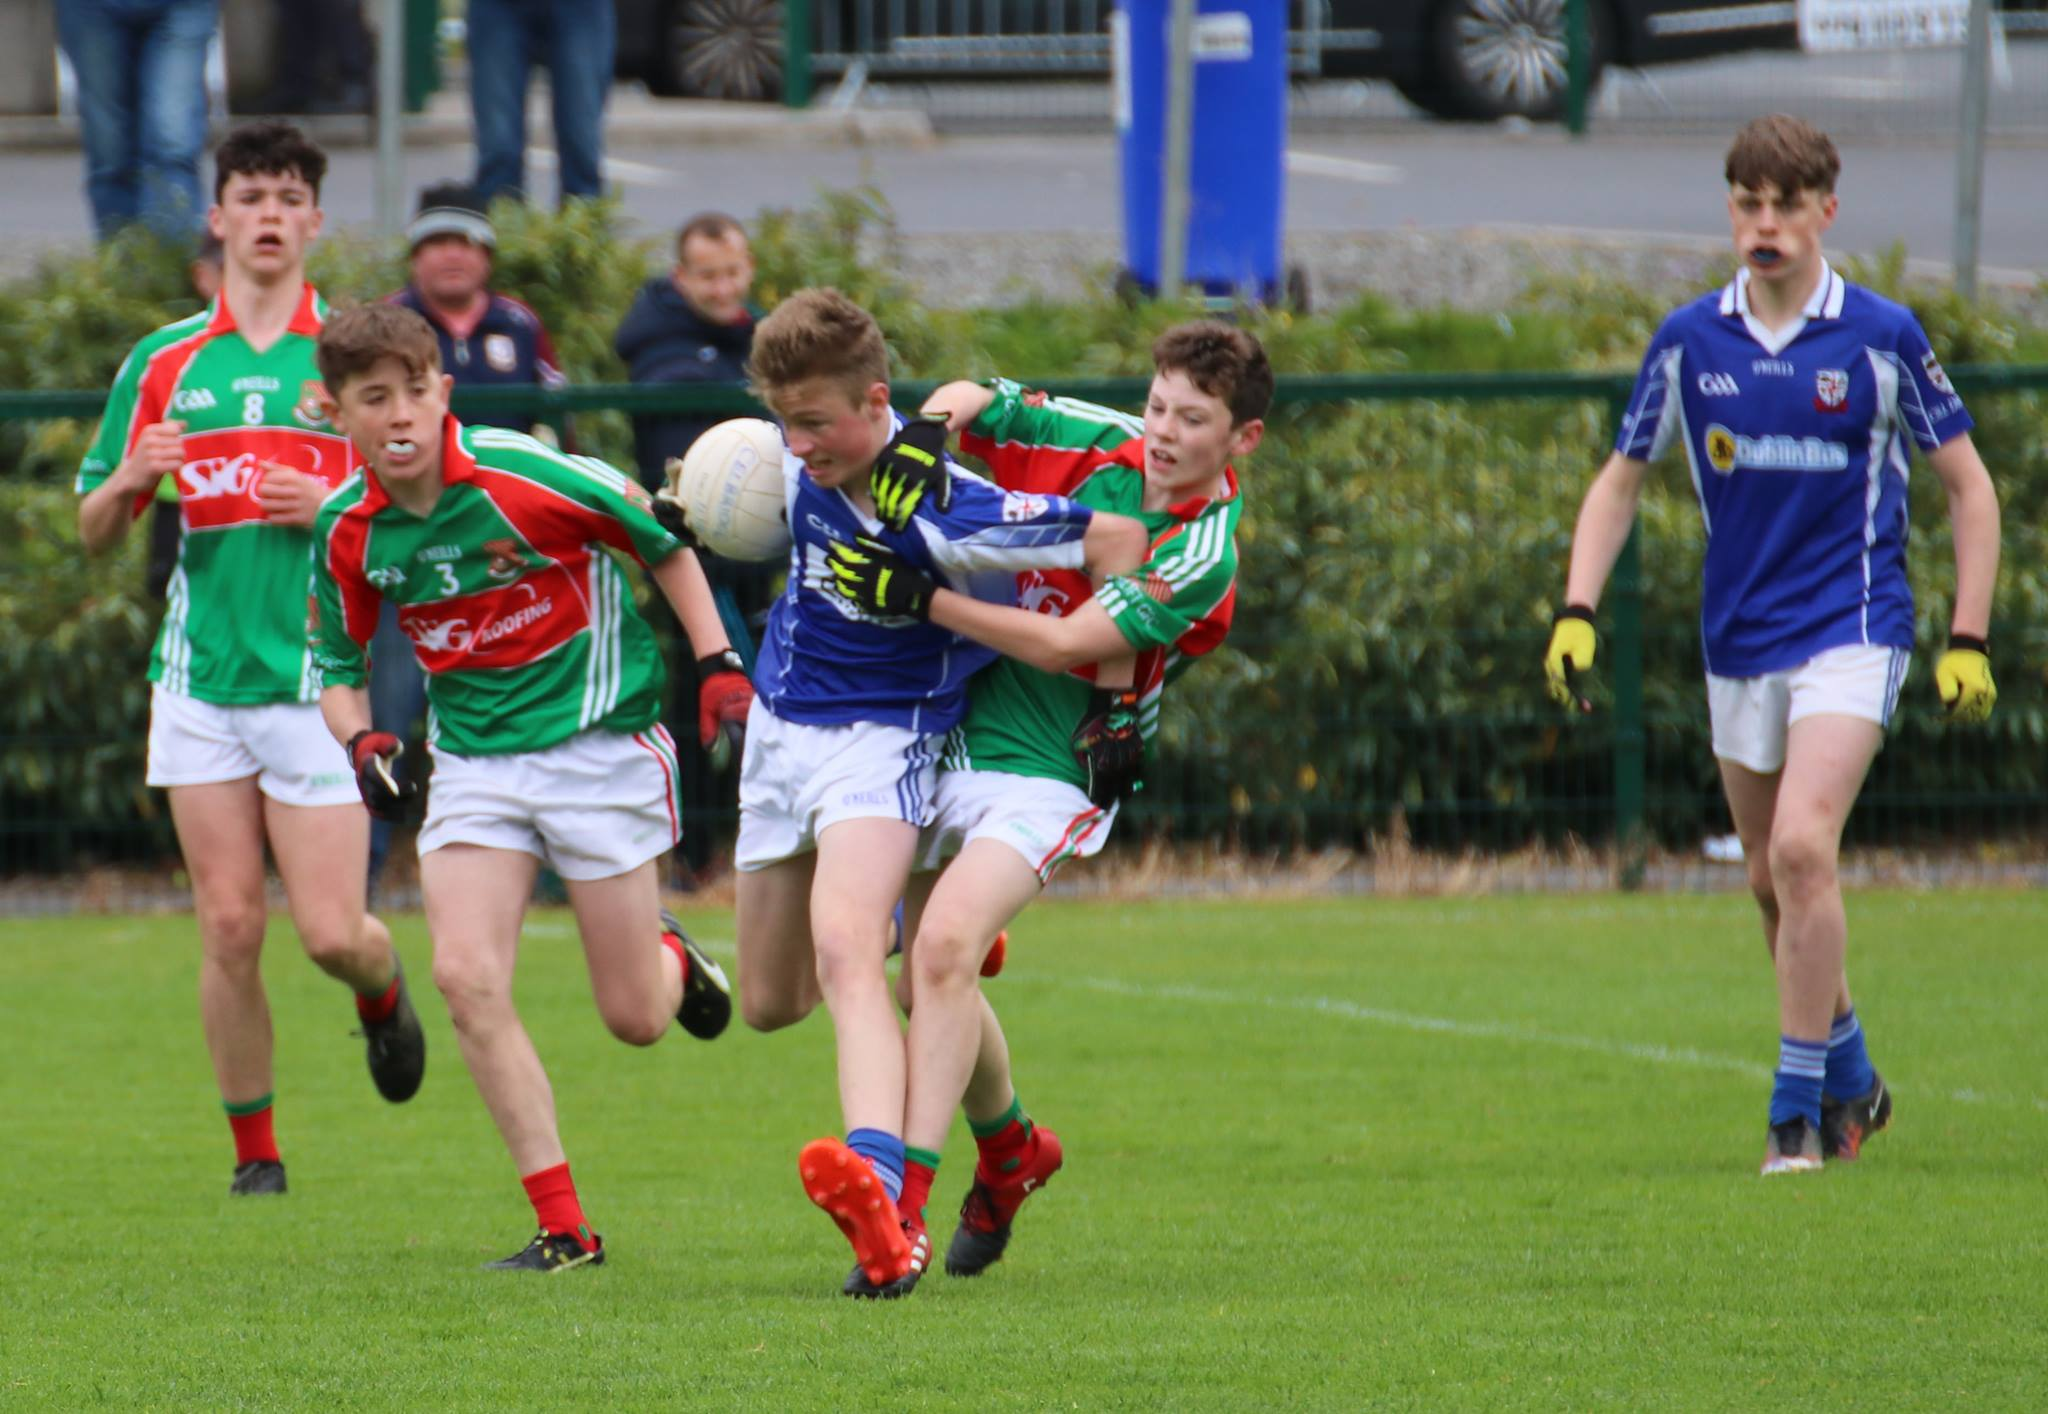 Suncroft v Celbridge Feile A Shield 25